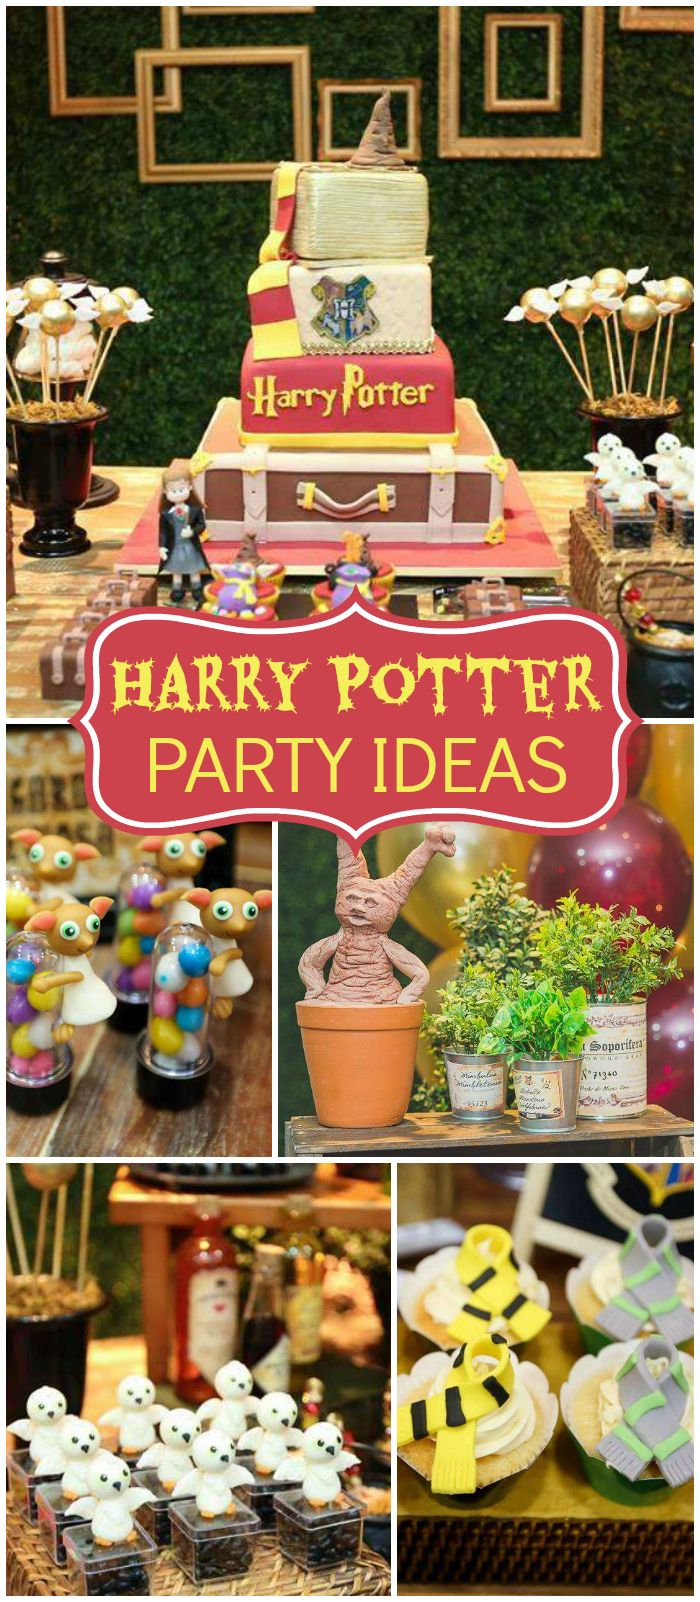 Any Harry Potter Fan Will Not Want To Miss This Spectacular Party See More Ideas At CatchMyParty